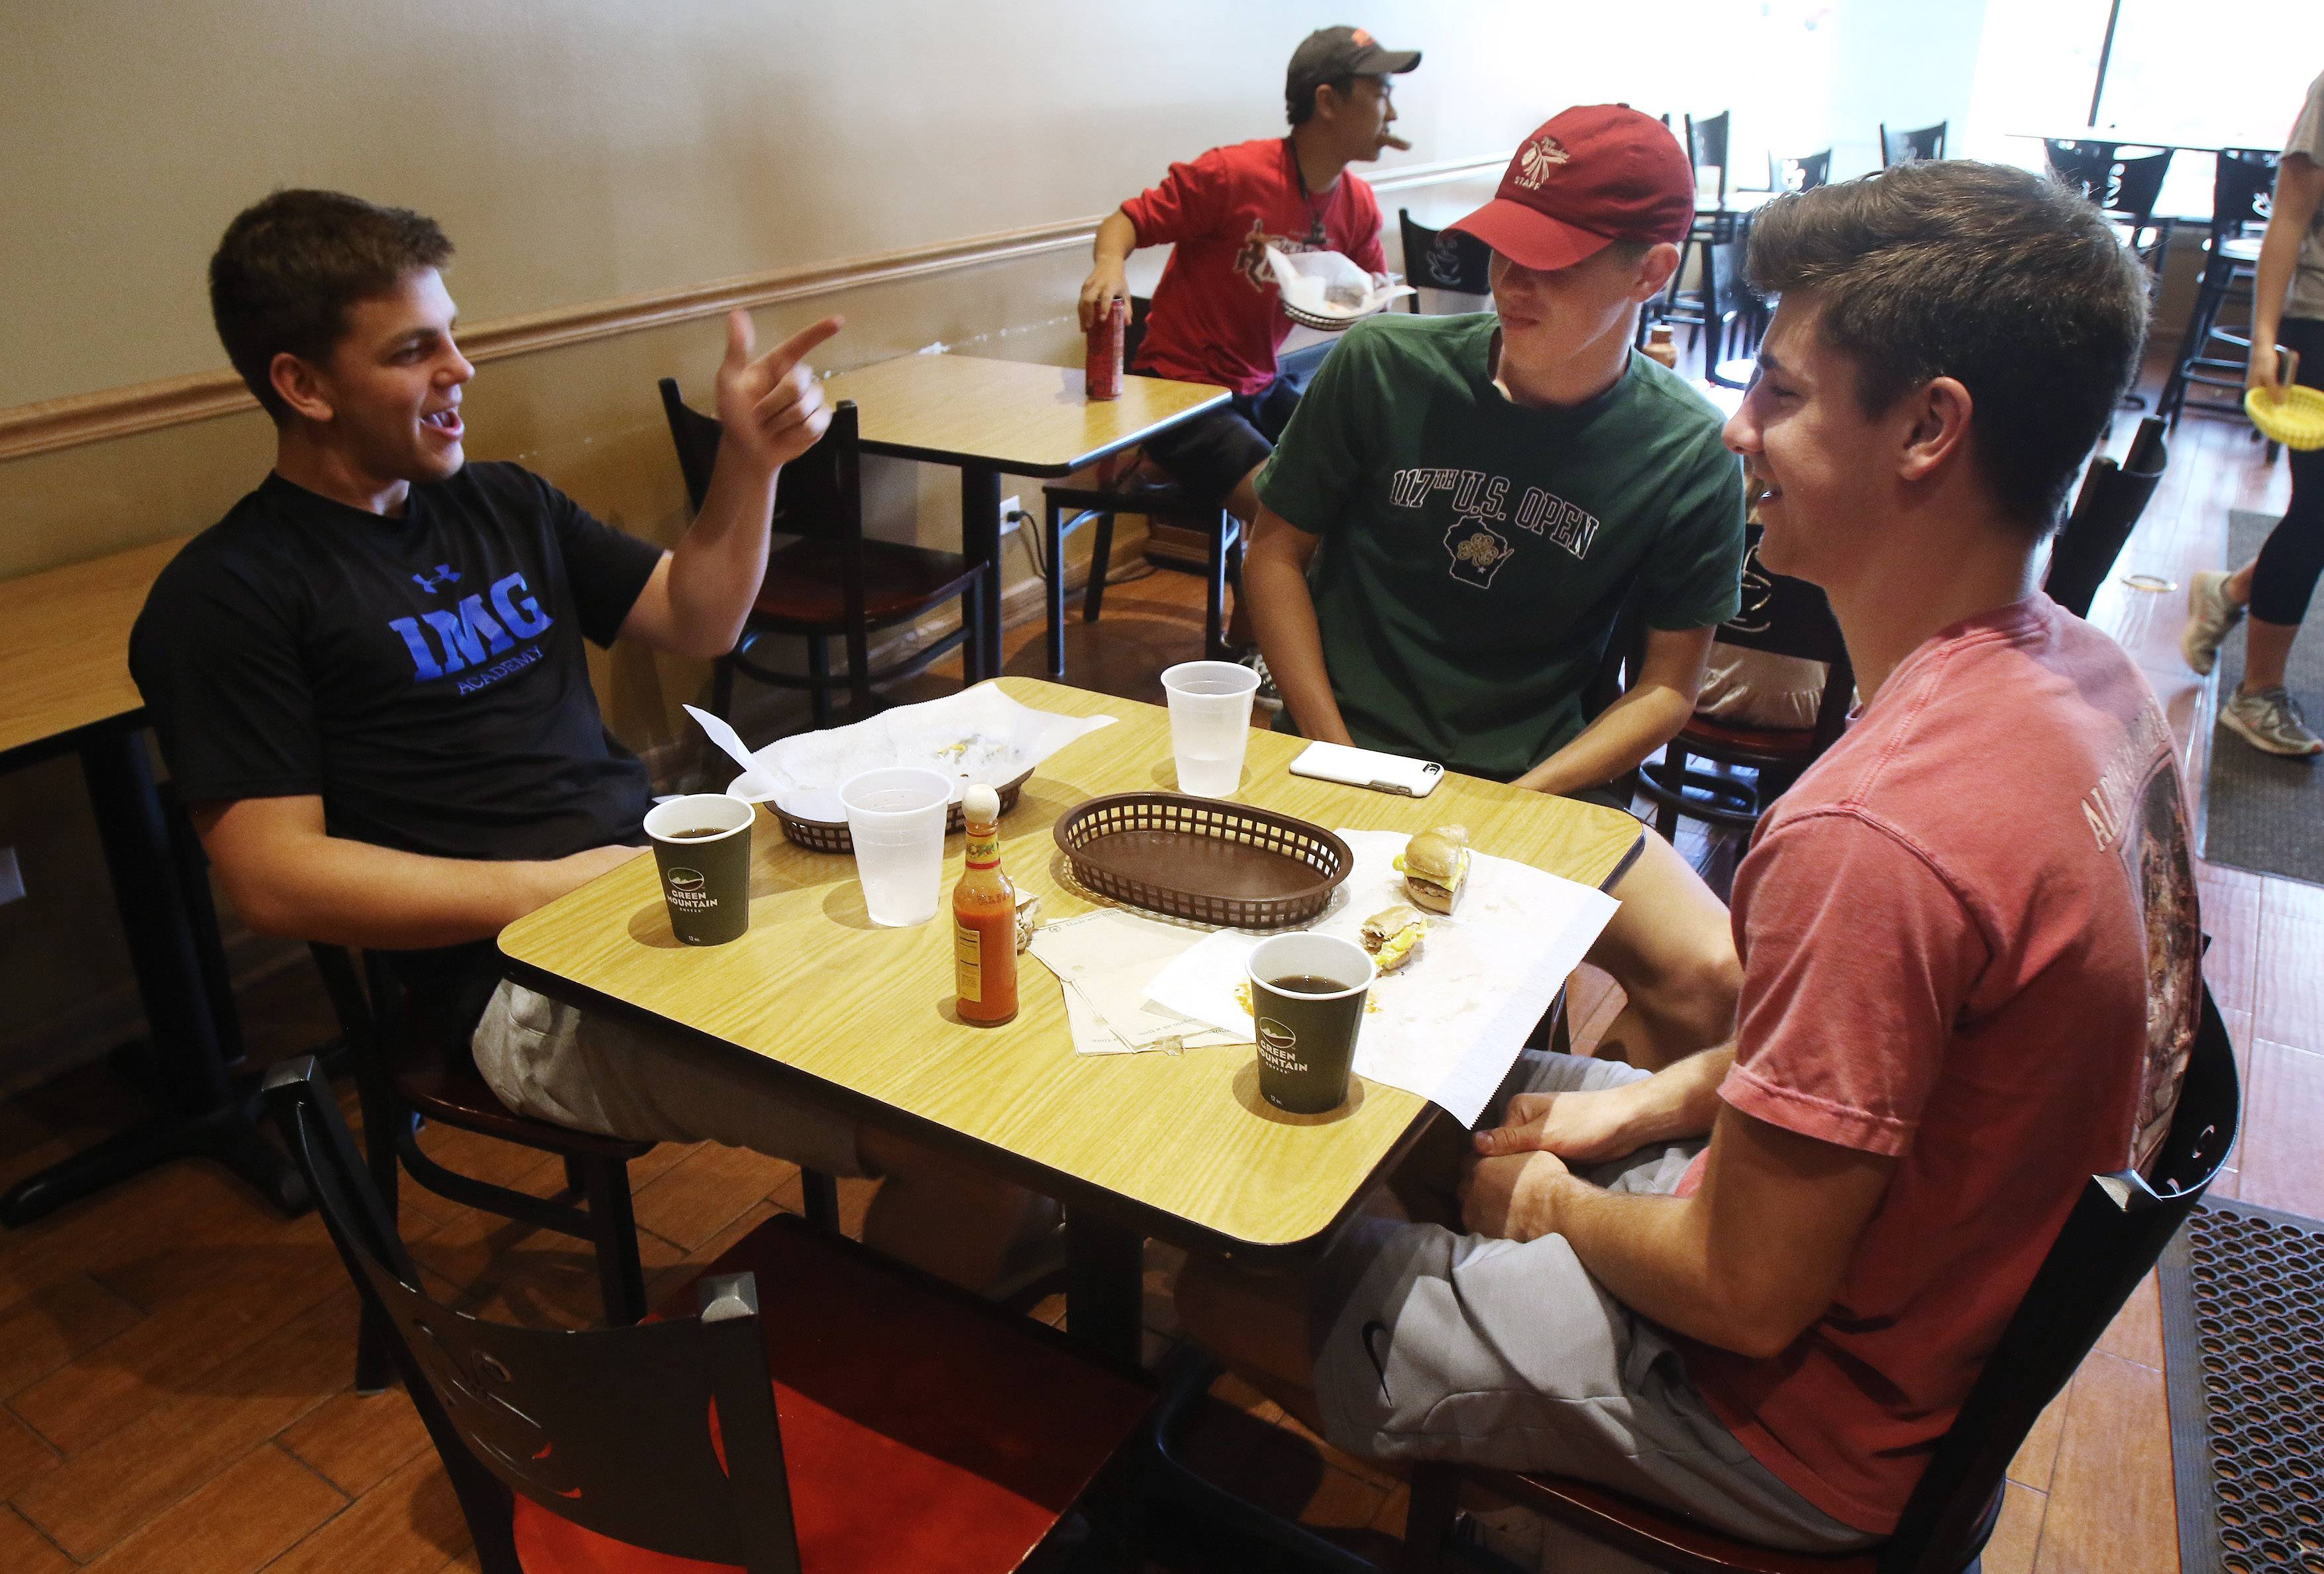 Libertyville residents Jackson Petersen, left, Ryan Cote and Anthony Brucato, all 19, at Bagels by the Book in Libertyville.